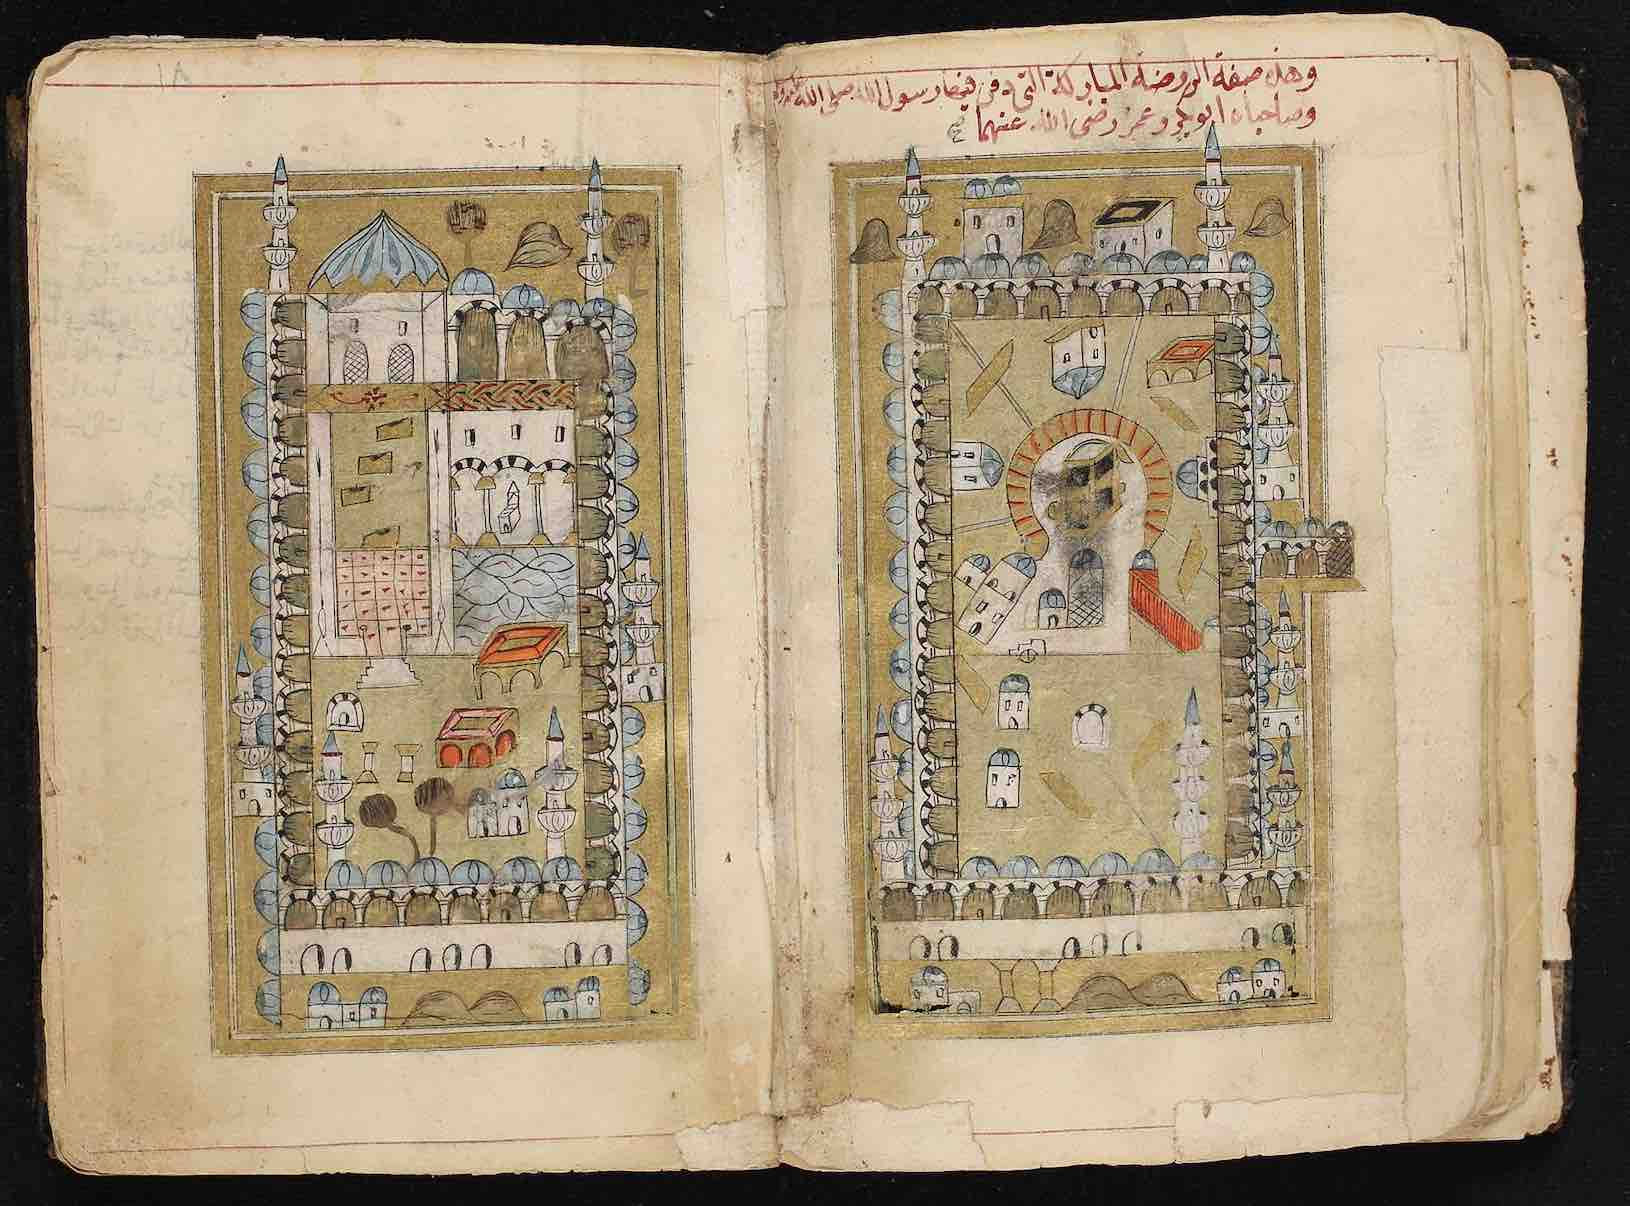 Illustrations of Medina and Mecca in Dalā'il al-khayrāt - the Prayers for the Prophet - from the Issaf Nashashibi Library, Jerusalem (<a href='https://w3id.org/vhmml/readingRoom/view/139449'>DINL 356 143</a>)